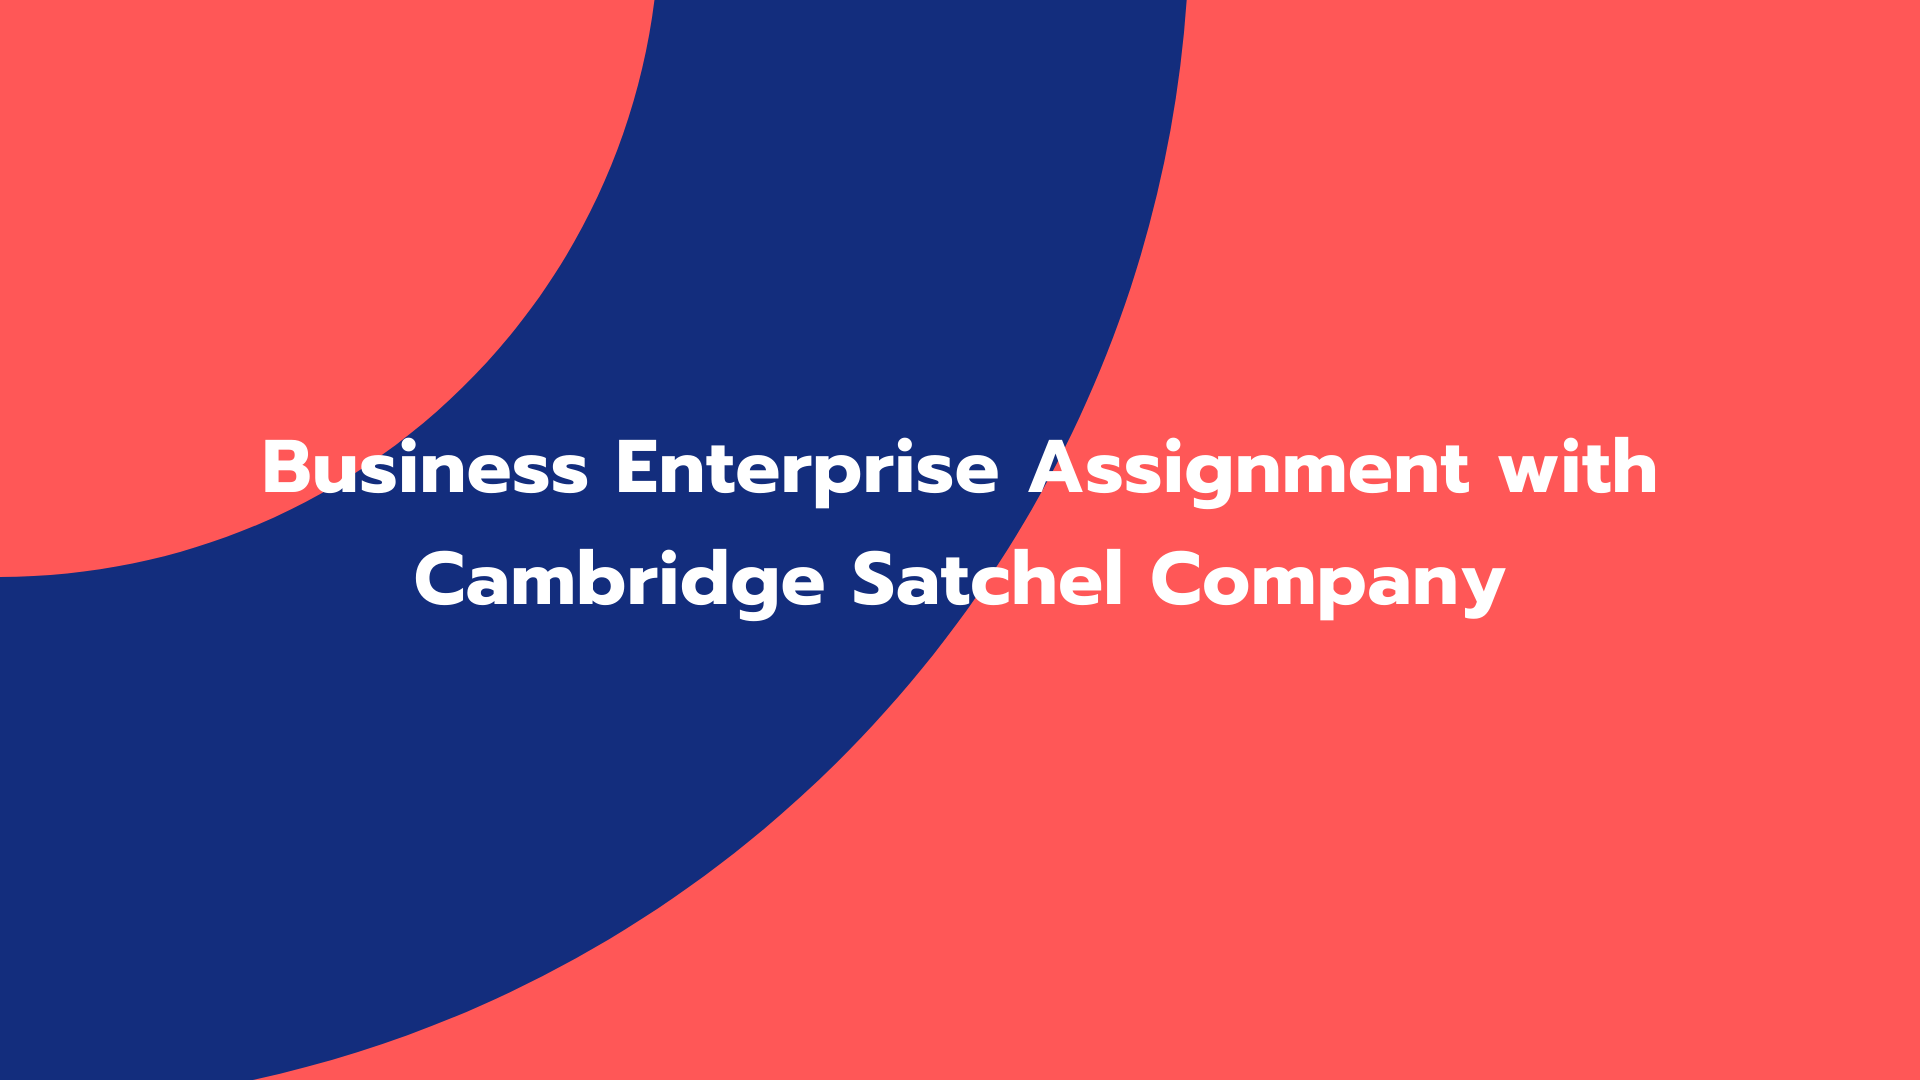 Business Enterprise Assignment with Cambridge Satchel Company